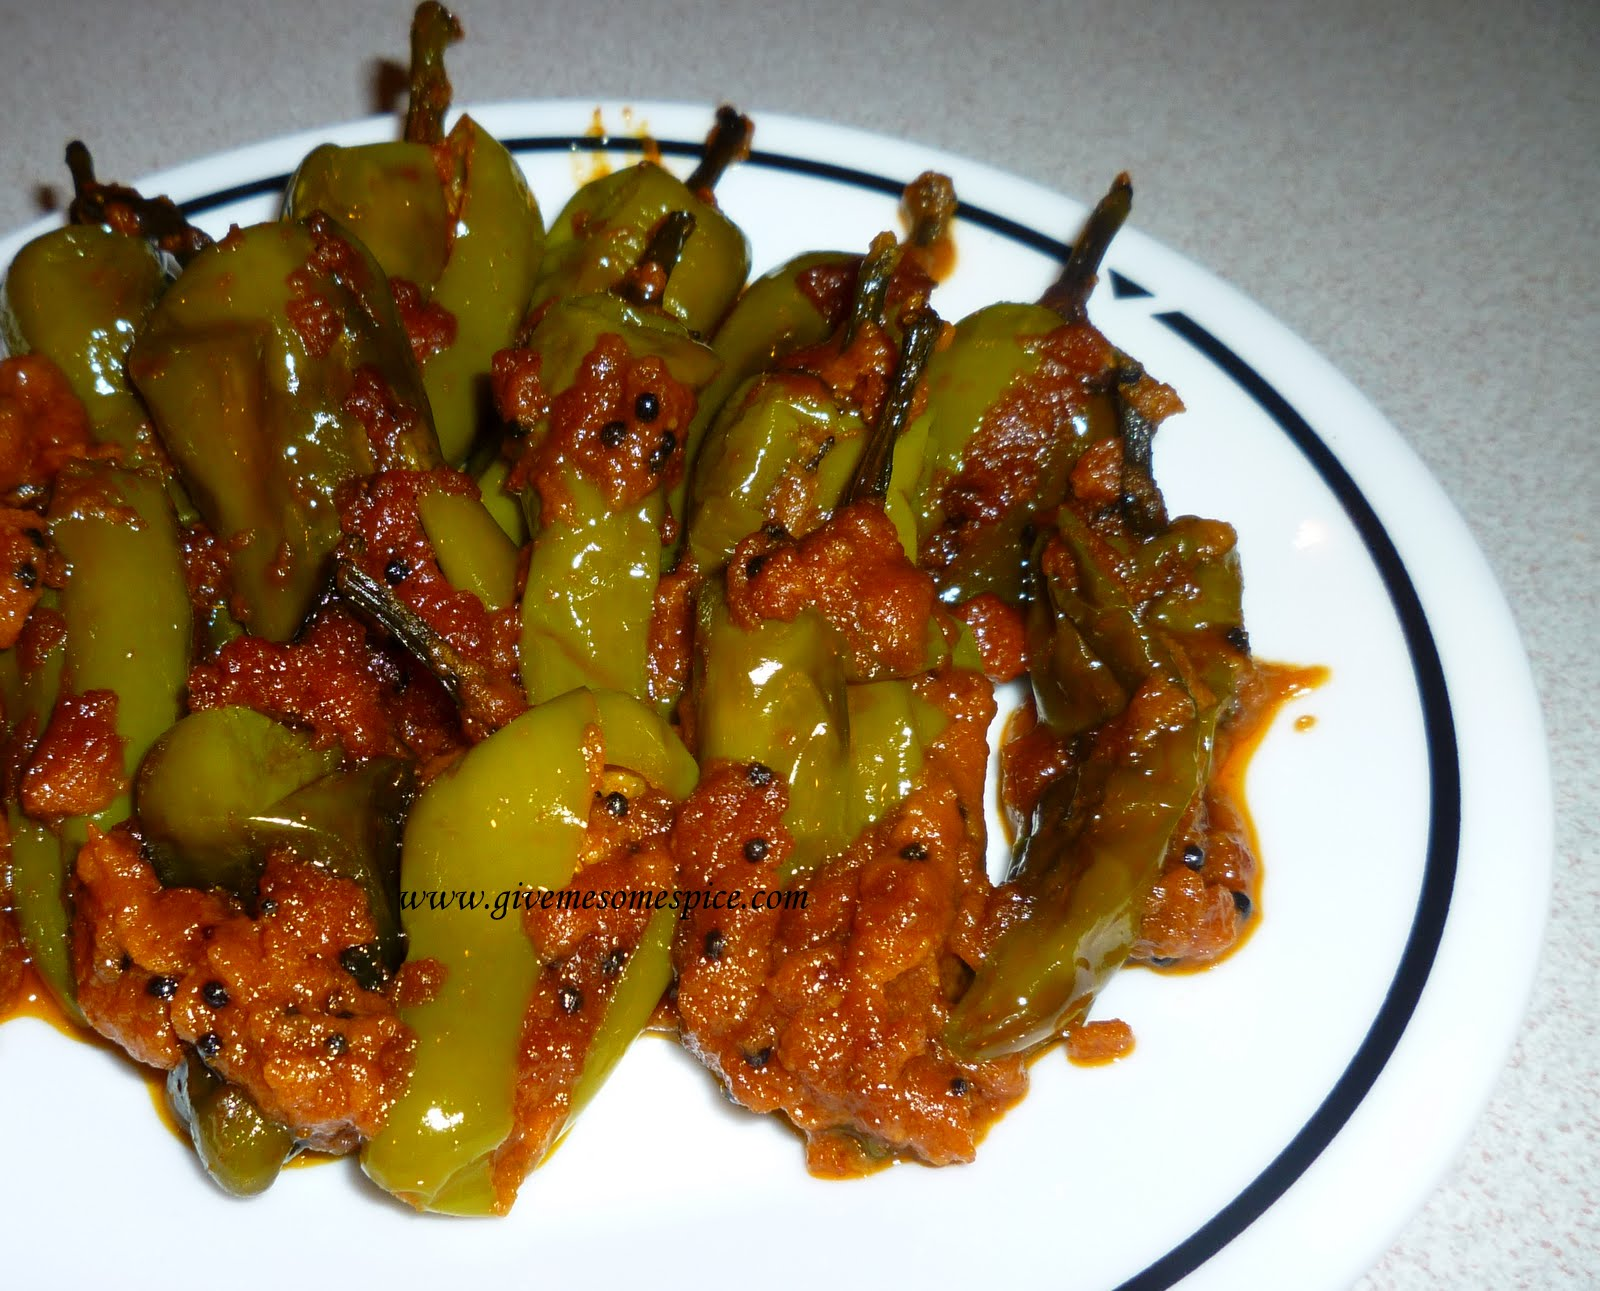 Stuffed hot green bullet chillies or bharela marcha authentic stuffed hot green bullet chillies or bharela marcha authentic vegetarian recipes traditional indian food step by step recipes give me some spice forumfinder Images